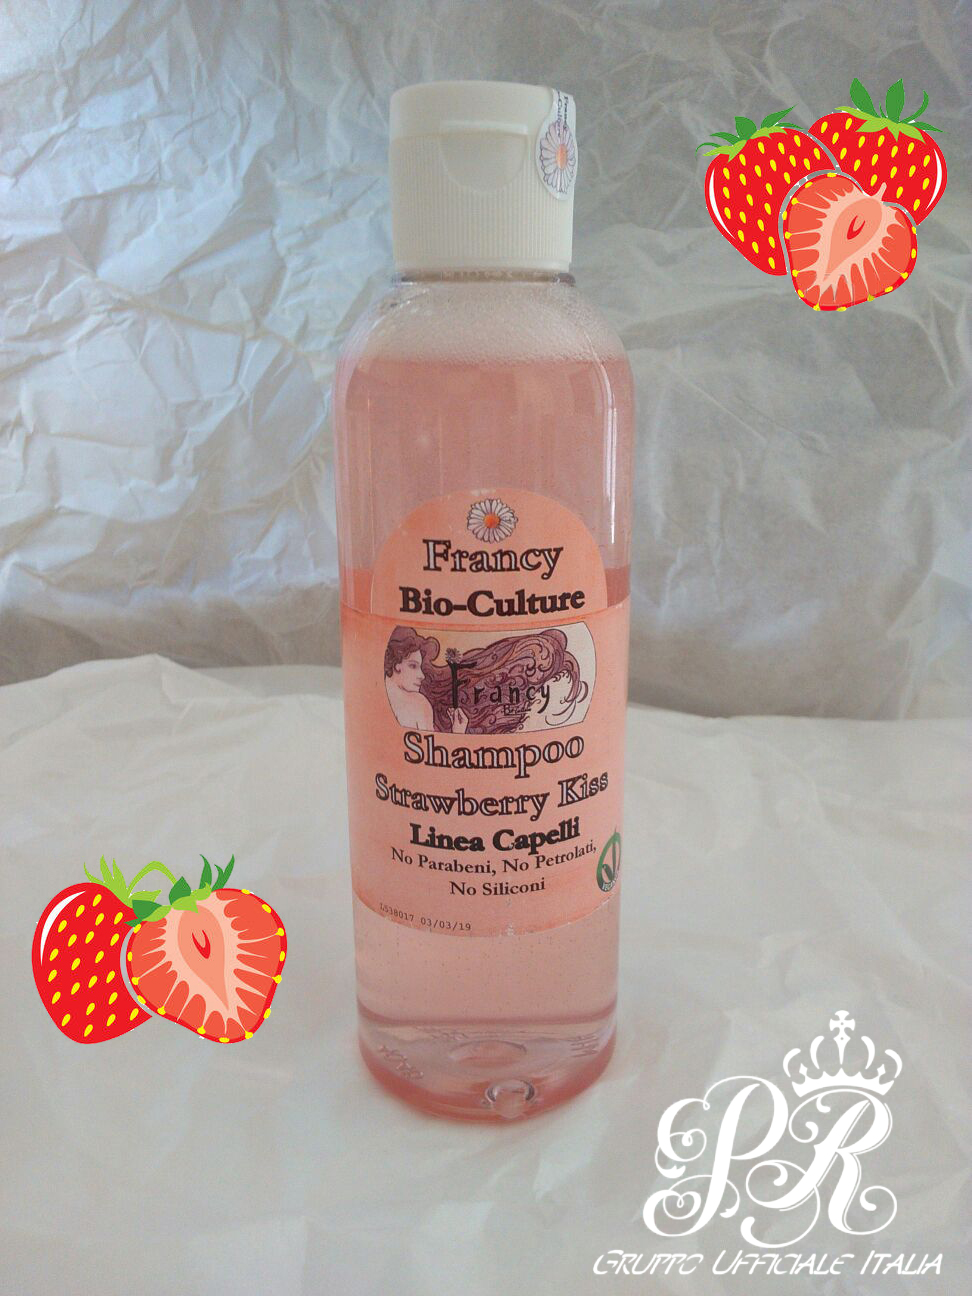 Recensione Shampoo Strawberry Kiss di Francy Biocolture